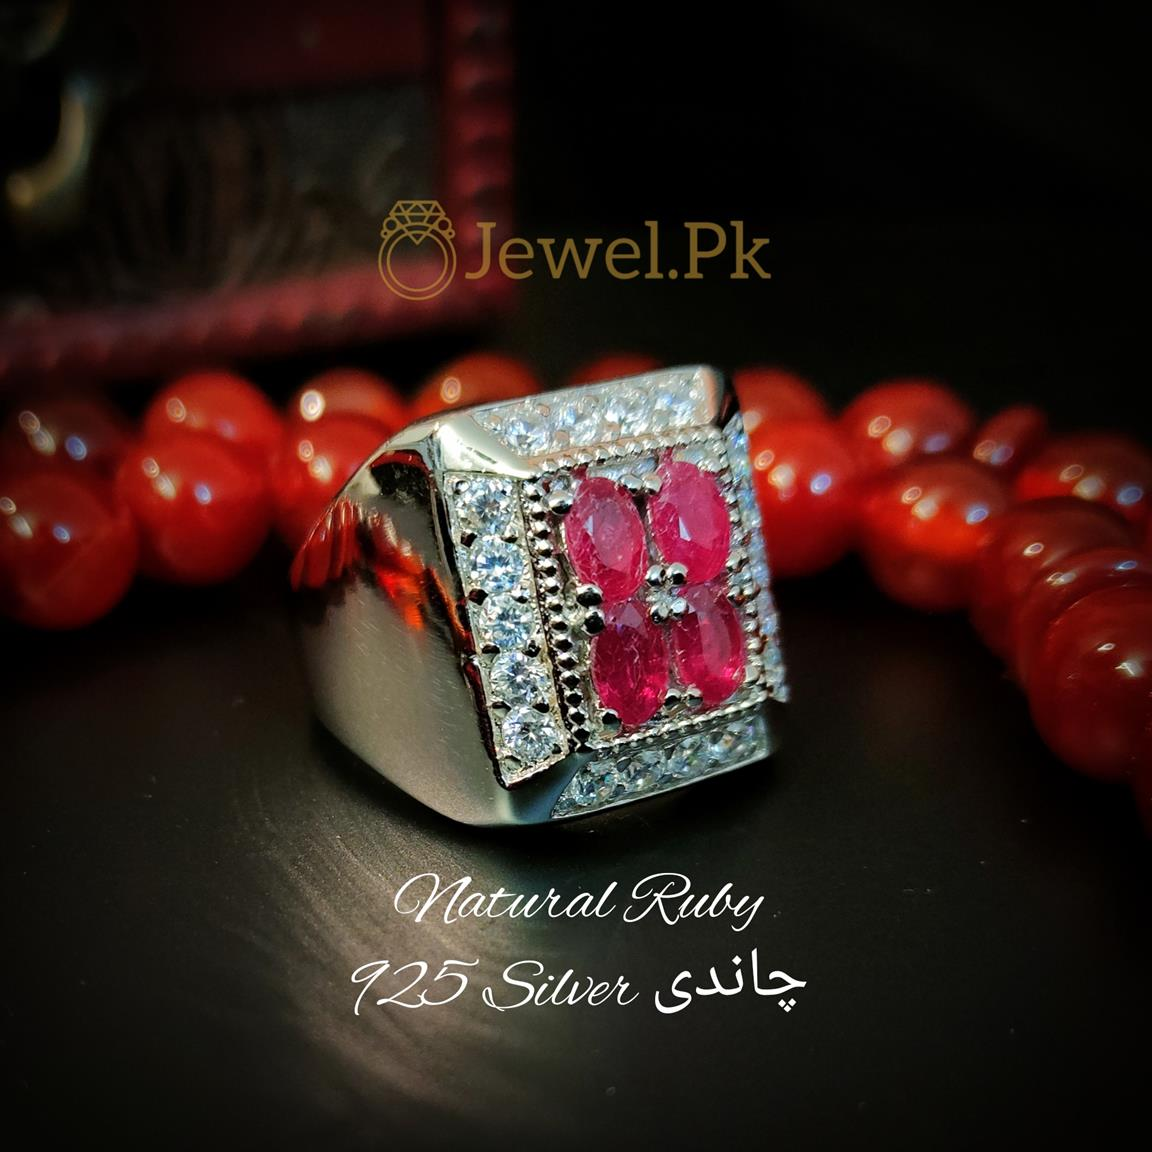 4 Pcs Ruby yaqoot ring buy online in pakistan 3 natural gemstones pakistan + 925 silver jewelry online